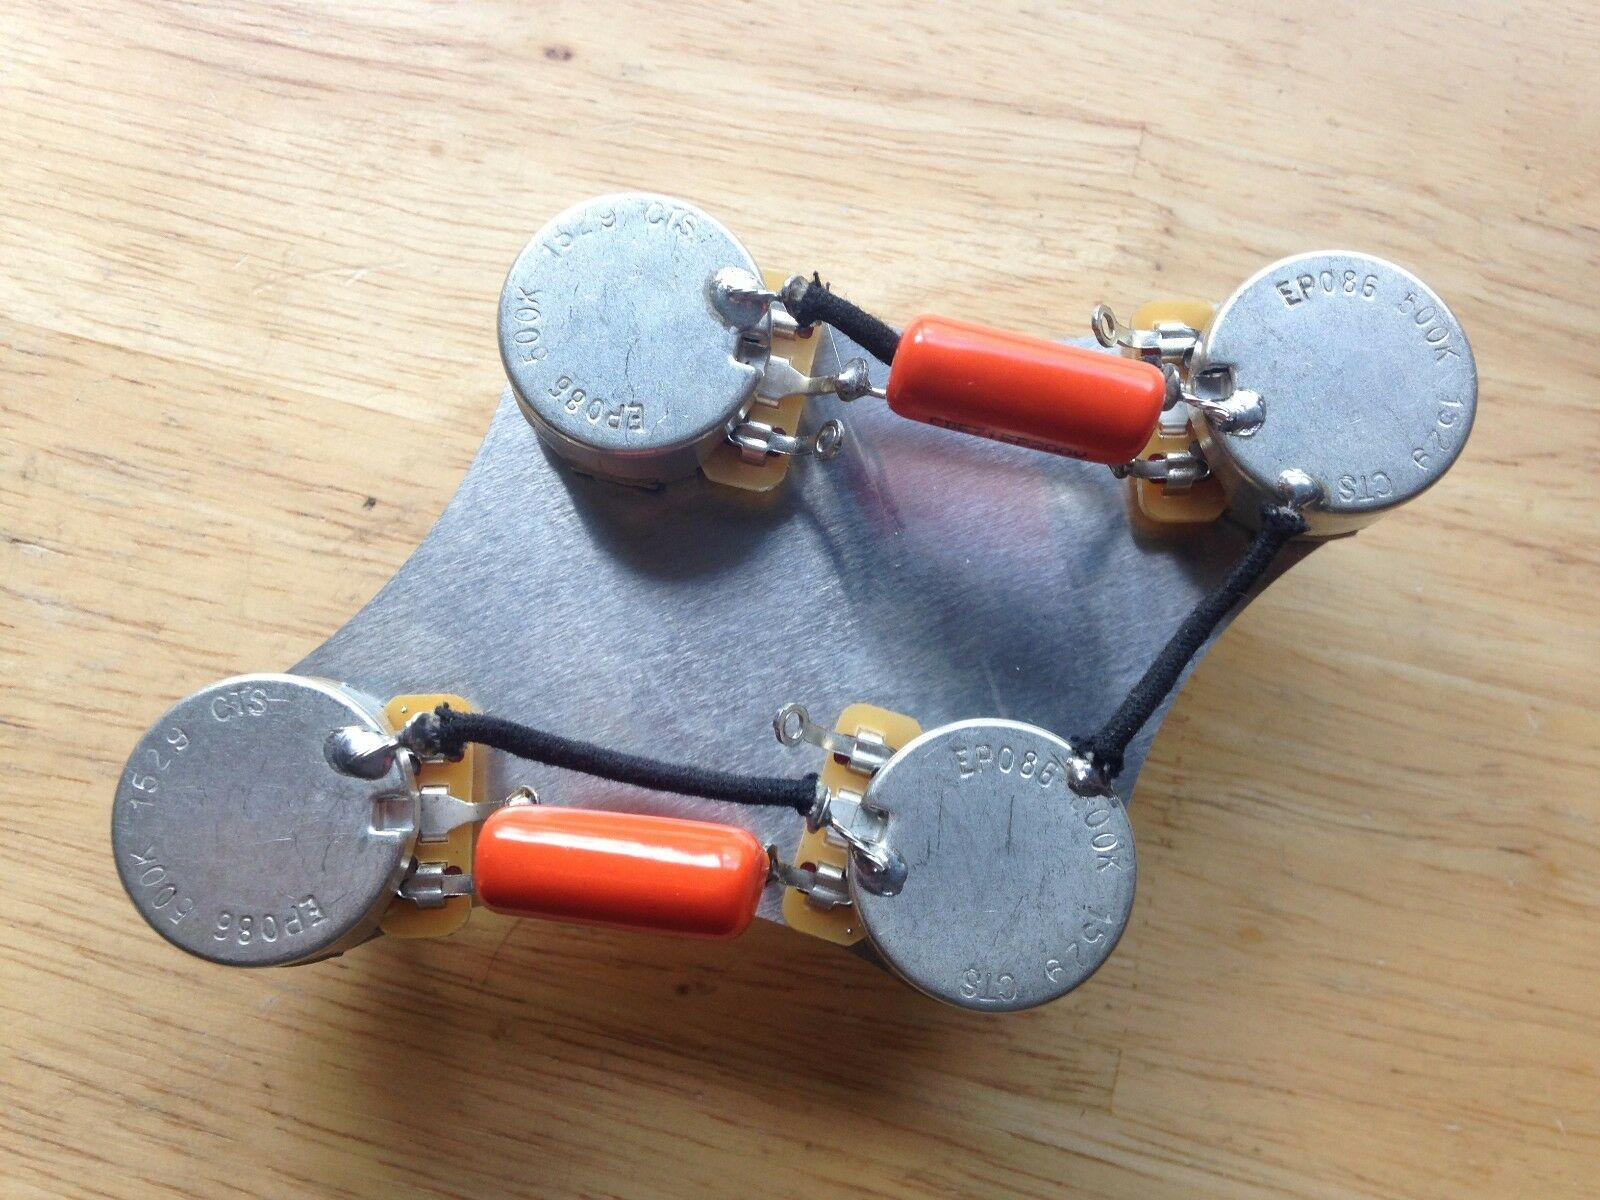 50s Wiring Harness Gibson Epiphone Les Paul 500k Cts Pots 047 Pre Wired Orange Drop Cap 2 Of 4